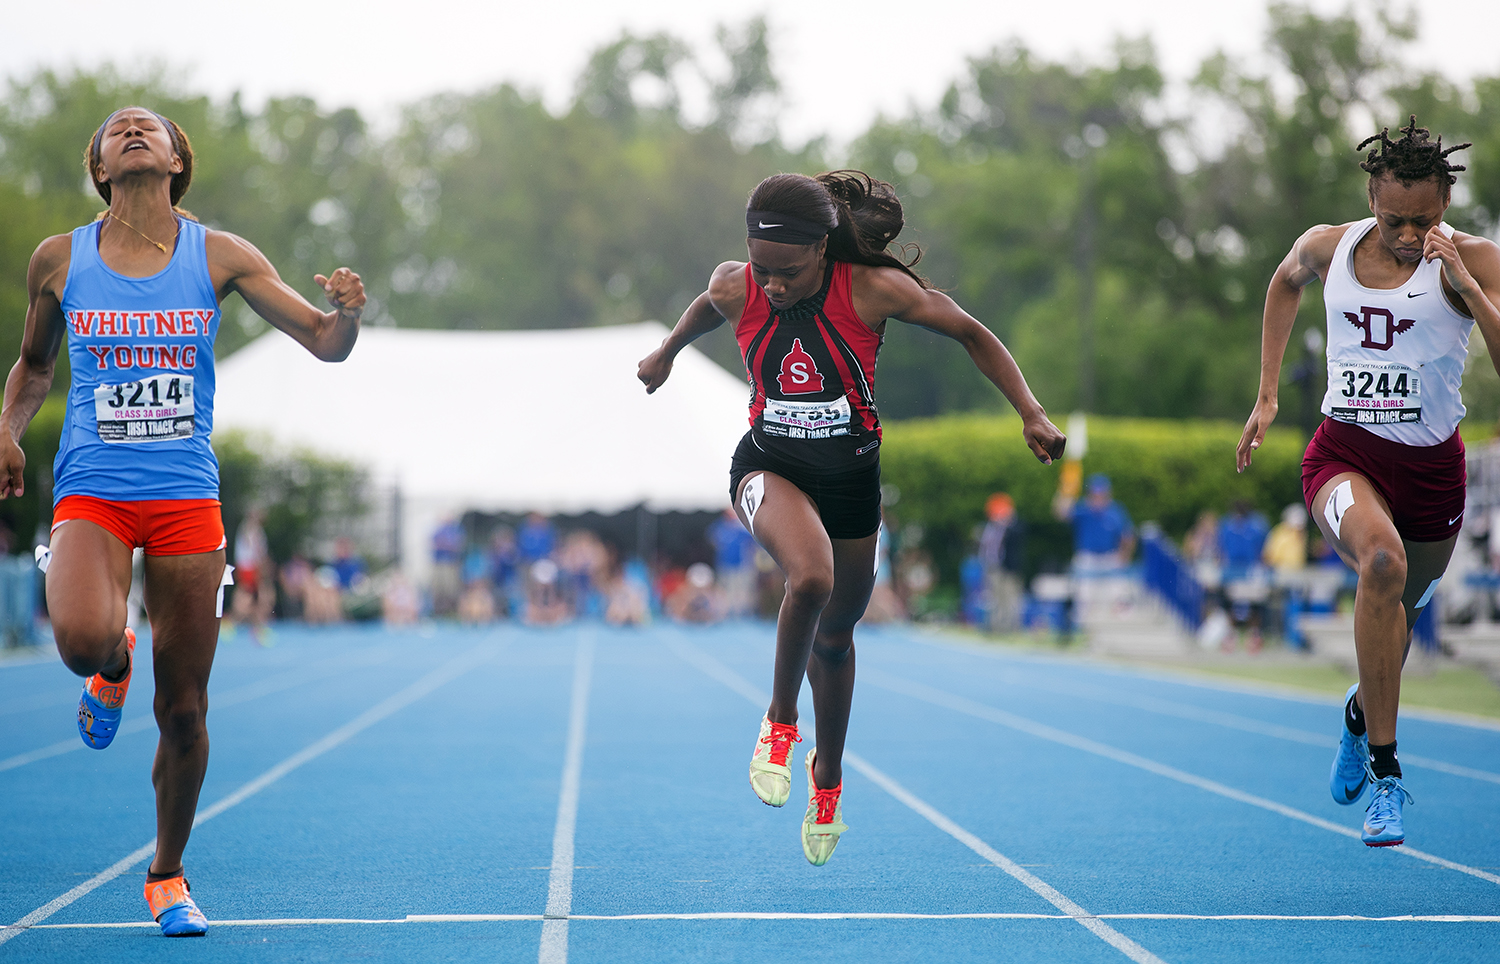 Springfield's Ozzy Erewele crosses the line .002 seconds behind Danville's Ameia Wilson to take third place in the Class 3A 100 meter dash IHSA Track and Field State Finals at O'Brien Field in Charleston, Ill., Saturday, May 19, 2018.  [Ted Schurter/The State Journal-Register]